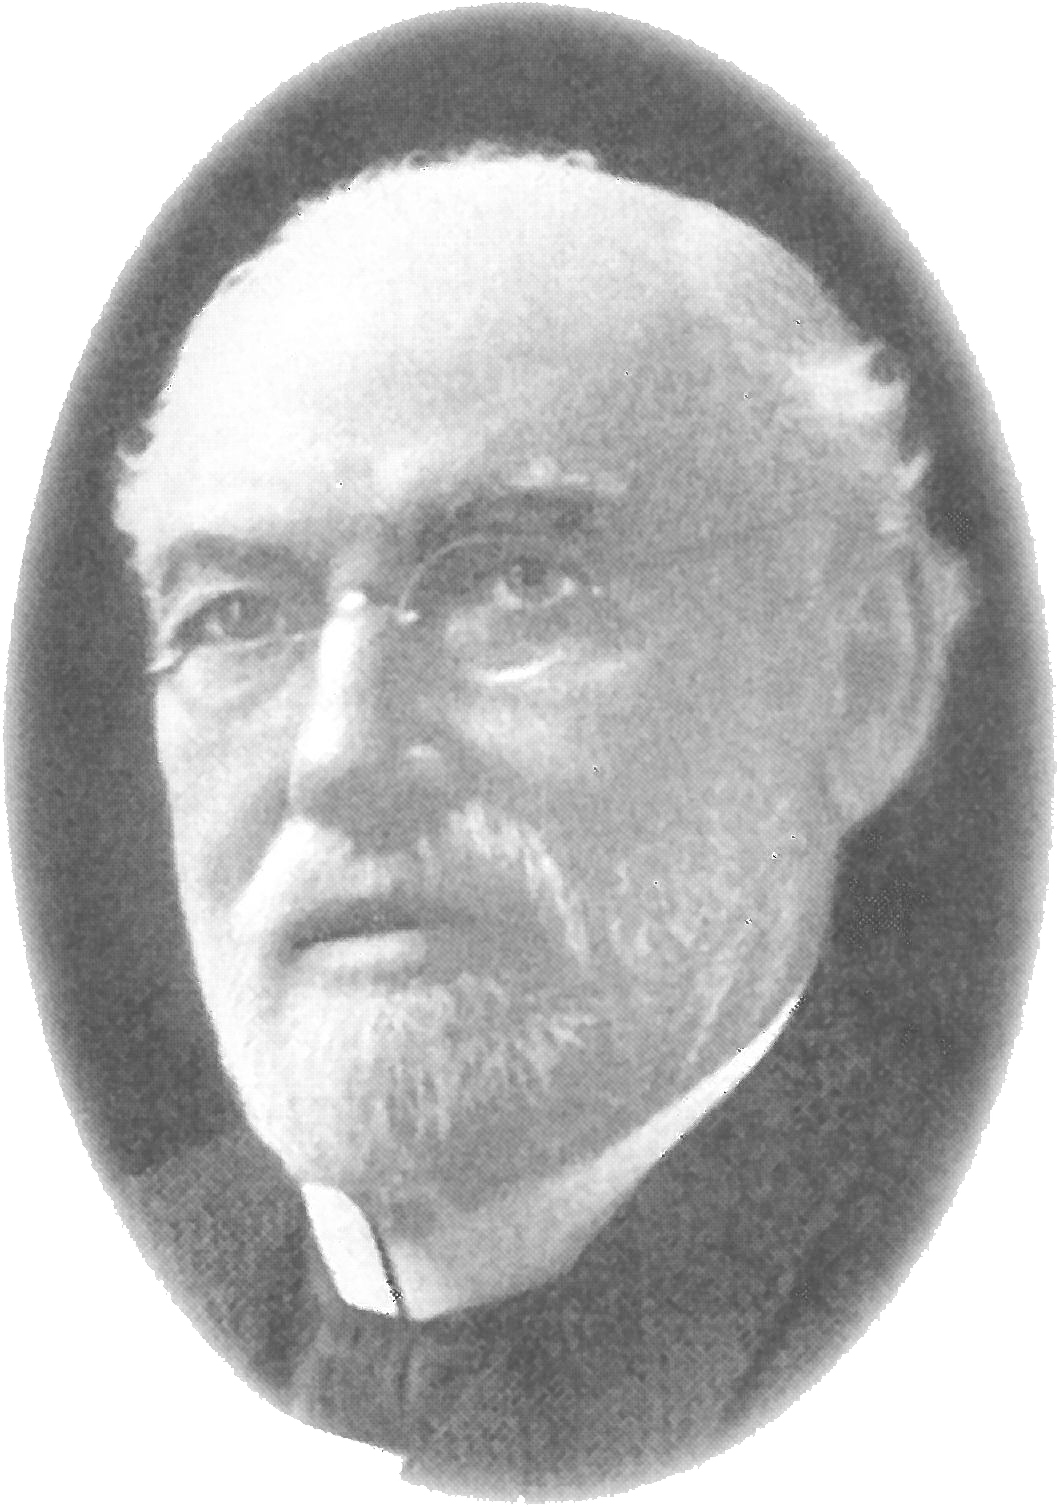 A. B. McDonell